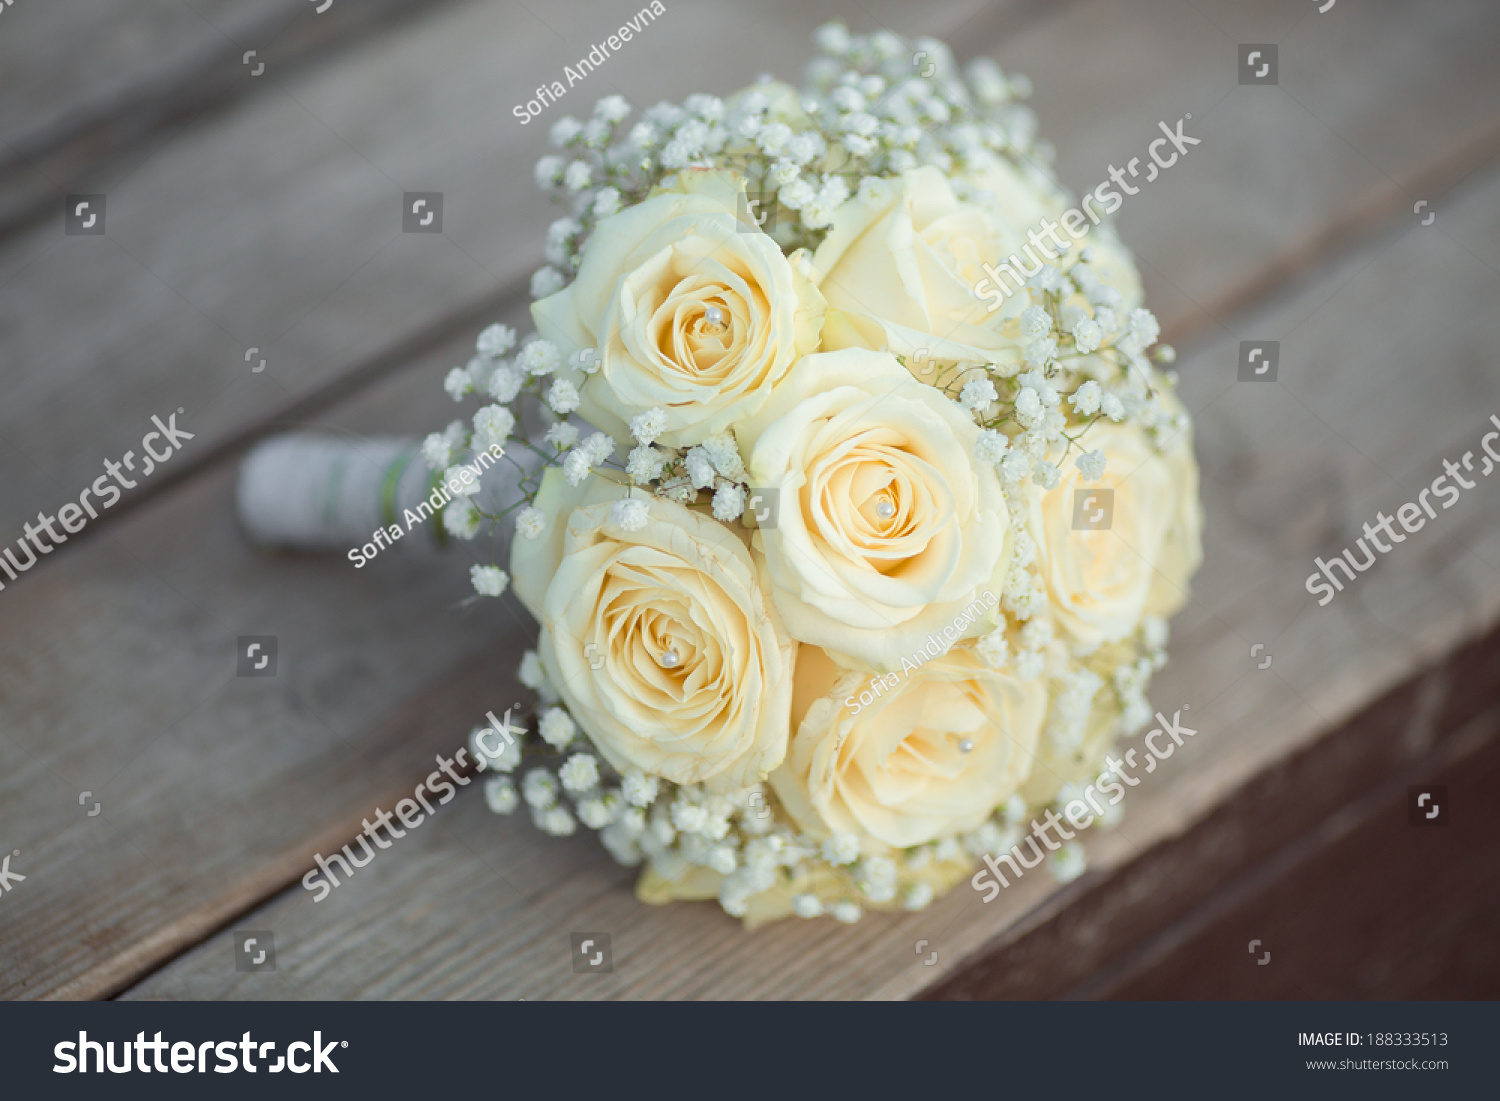 Wedding flowers white roses bouquet marriage stock photo royalty wedding flowers white roses bouquet marriage flowers bouquet sunset mightylinksfo